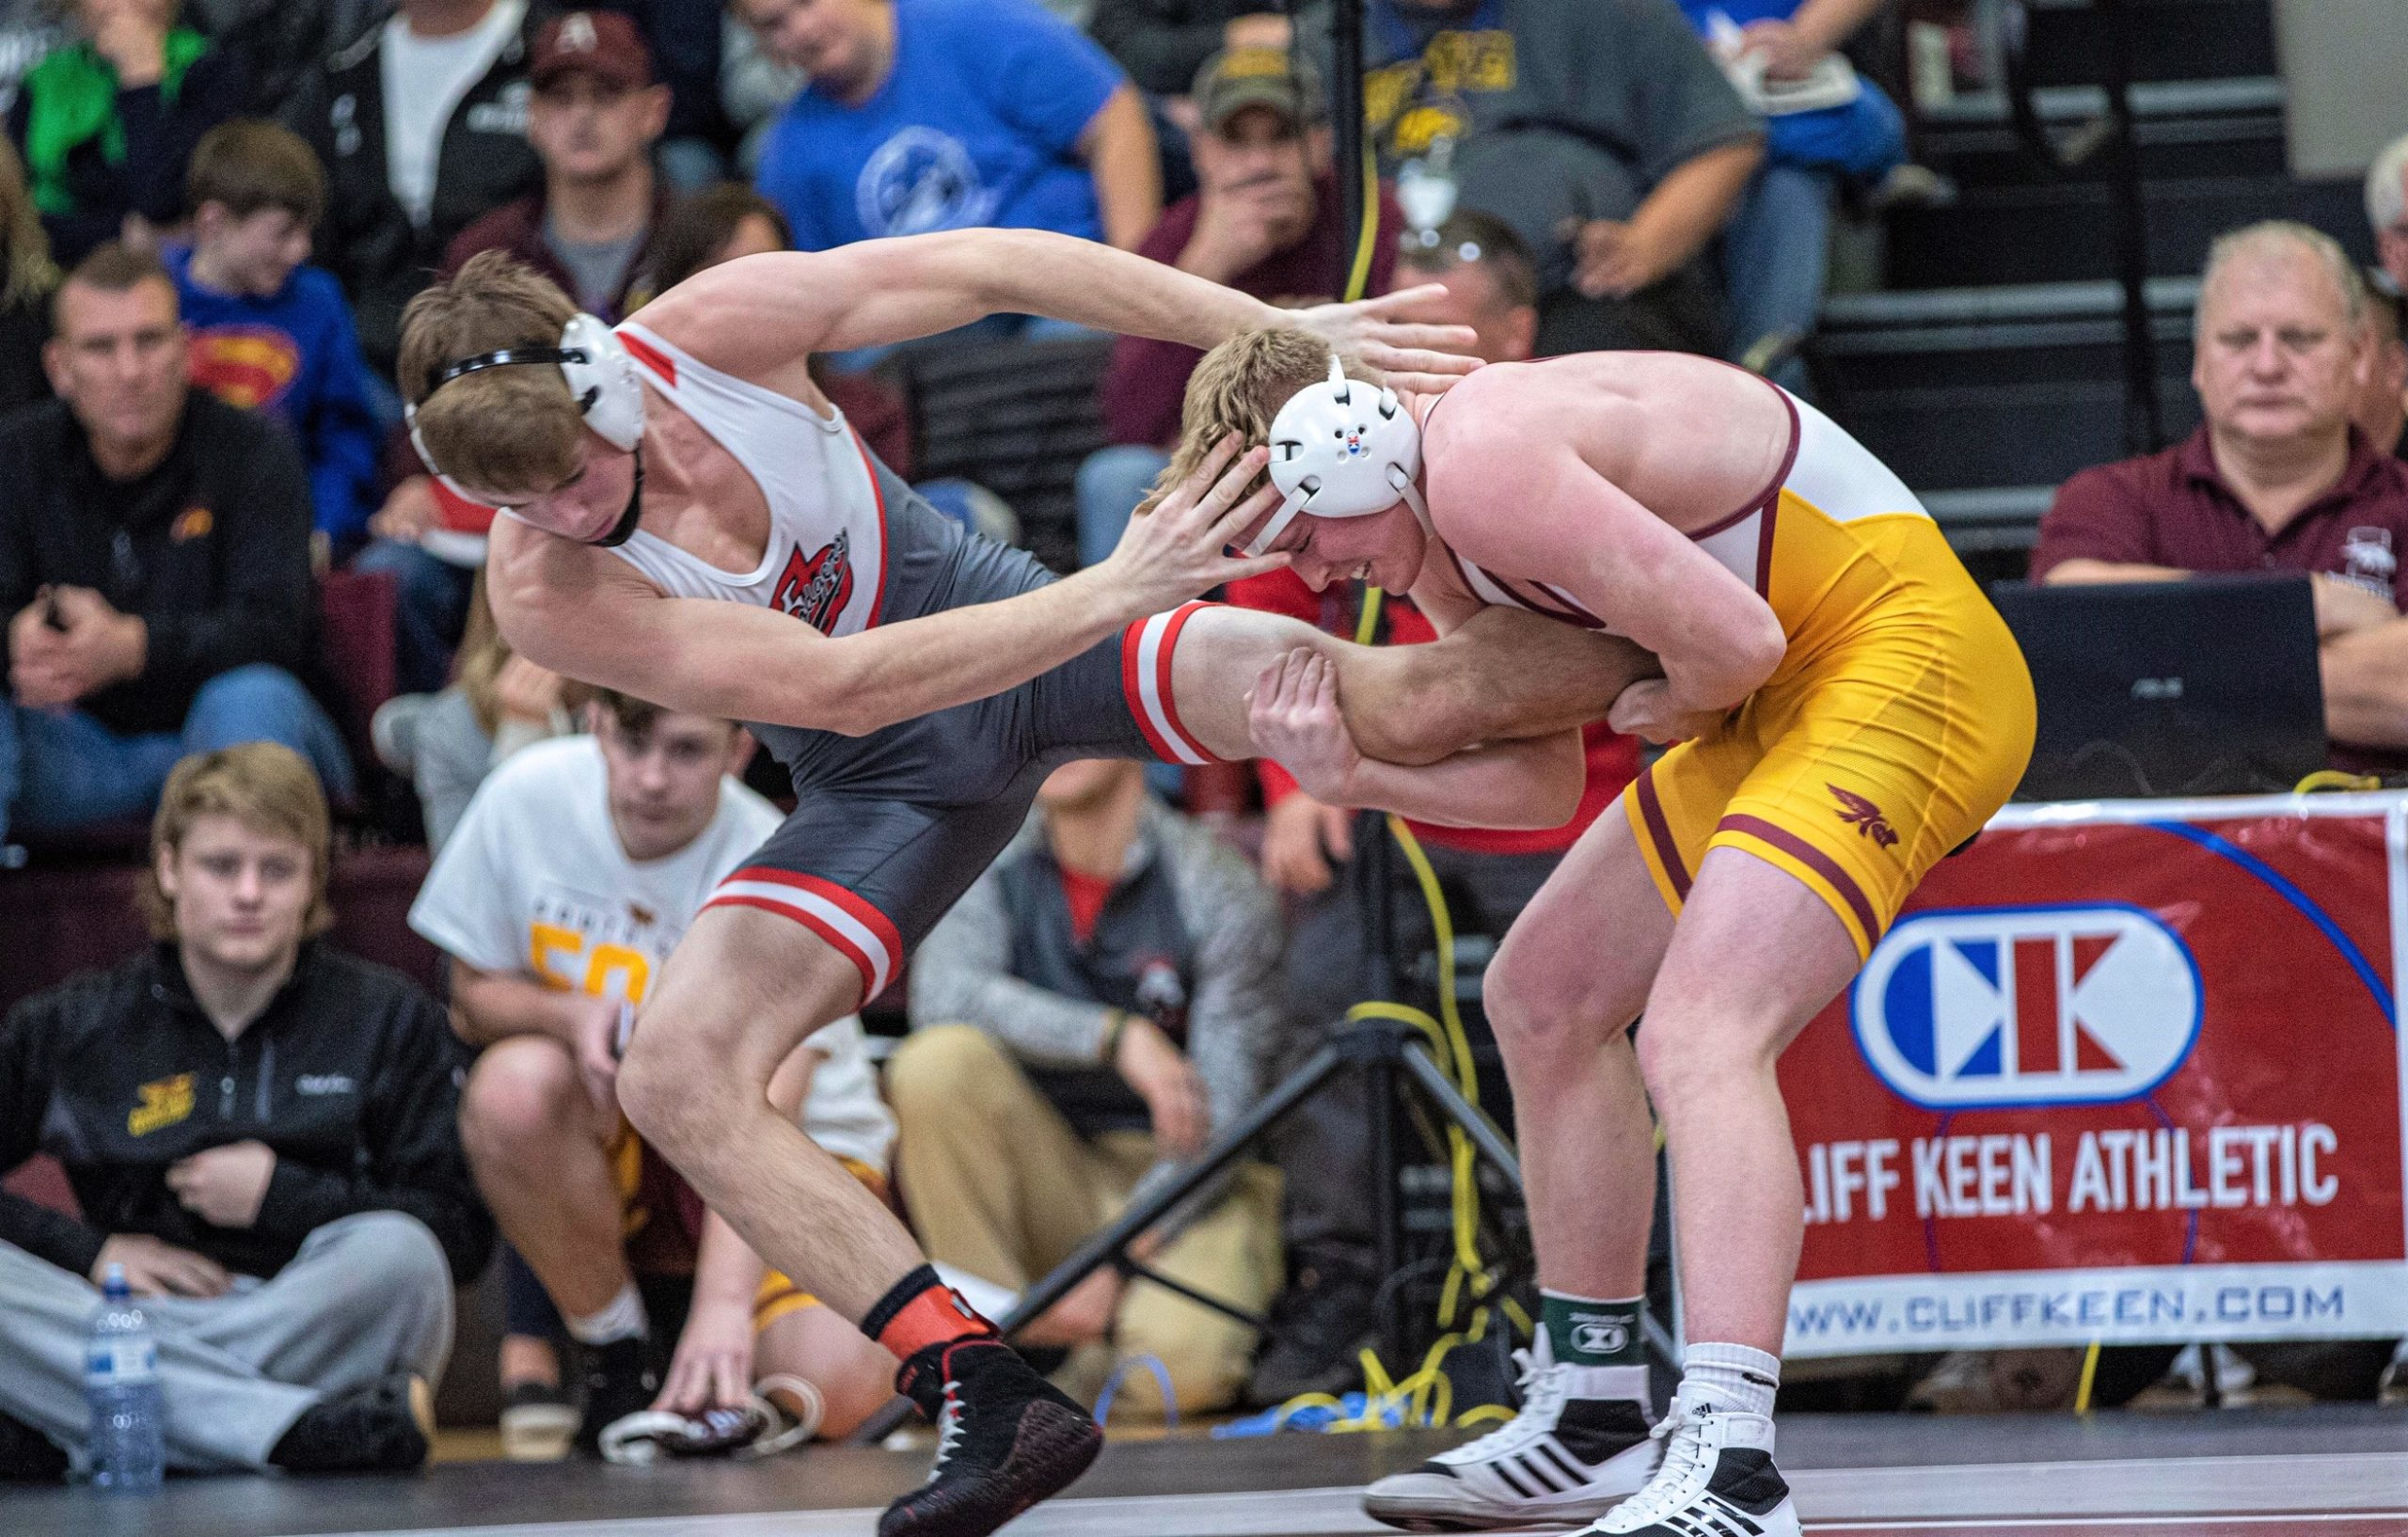 Hawk wrestlers tie for 5th place among 33 teams at Cliff Keen Invitational